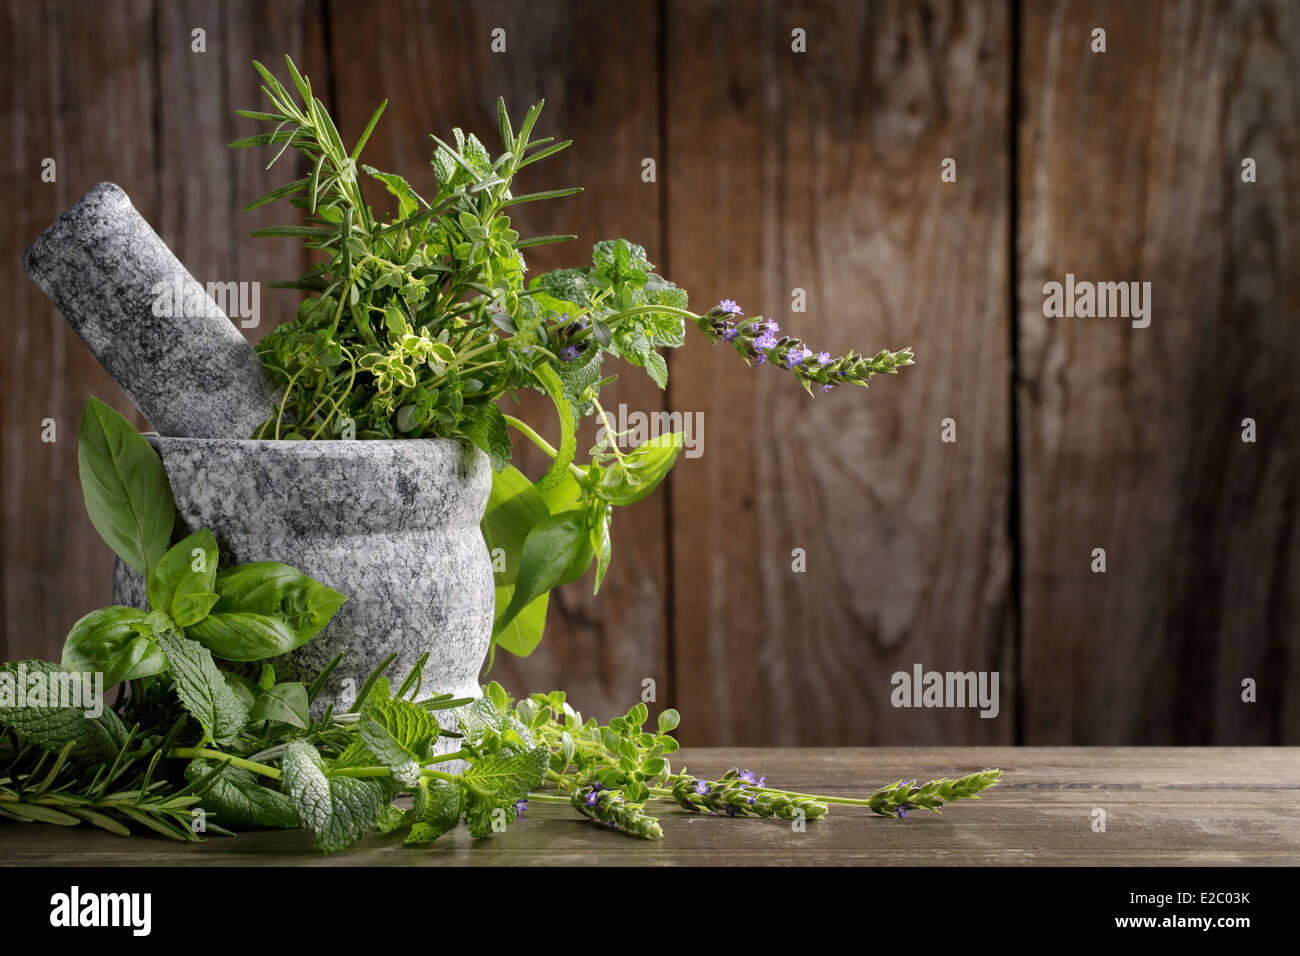 herbs in mortar on wooden background - Stock Image